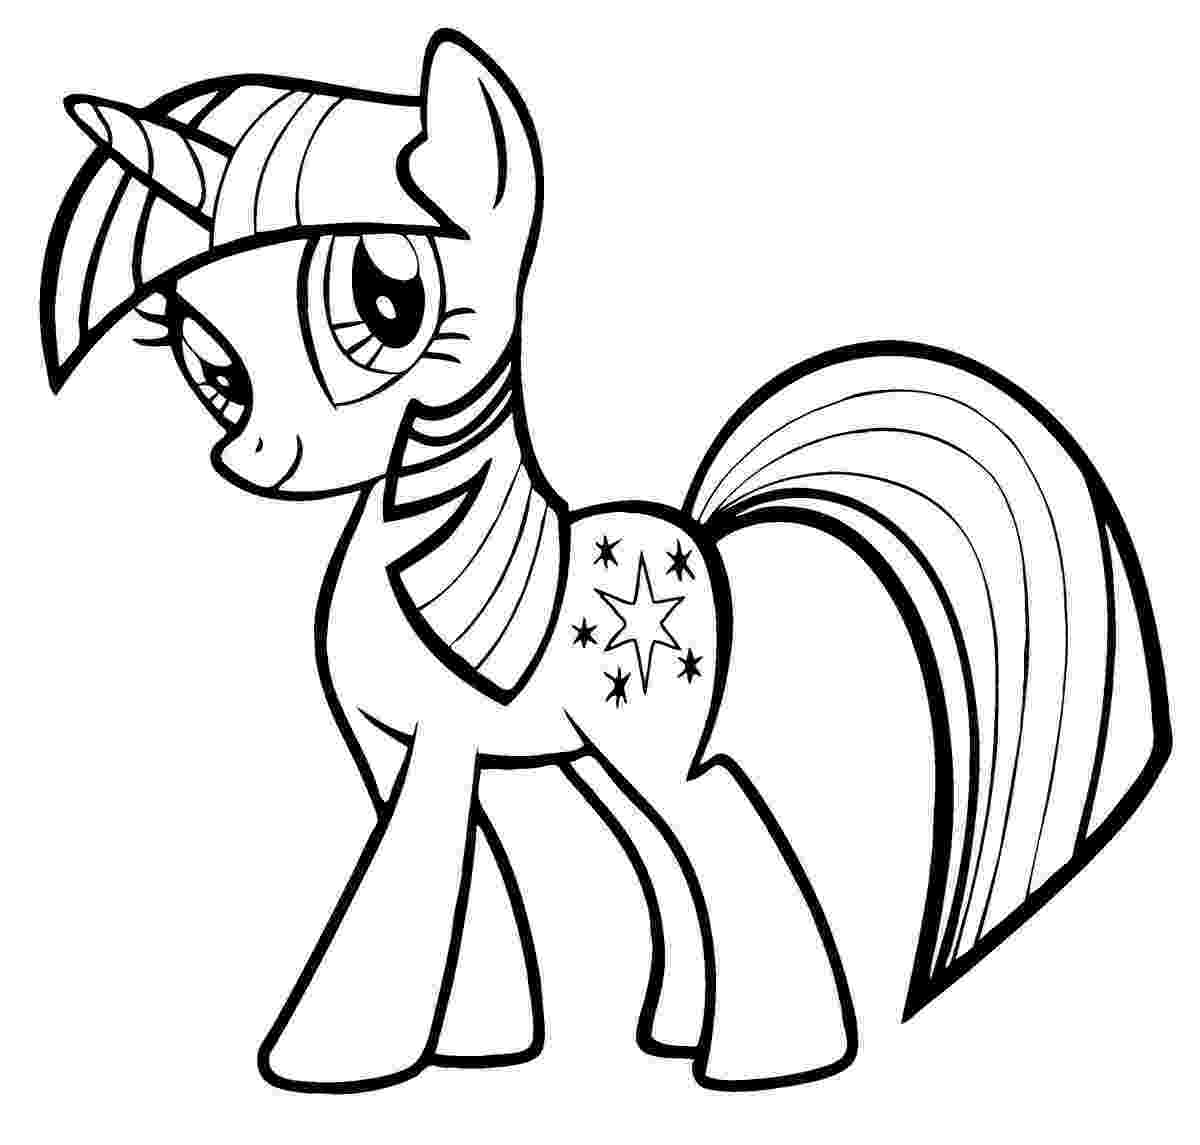 coloring pages little pony free printable my little pony coloring pages for kids little coloring pages pony